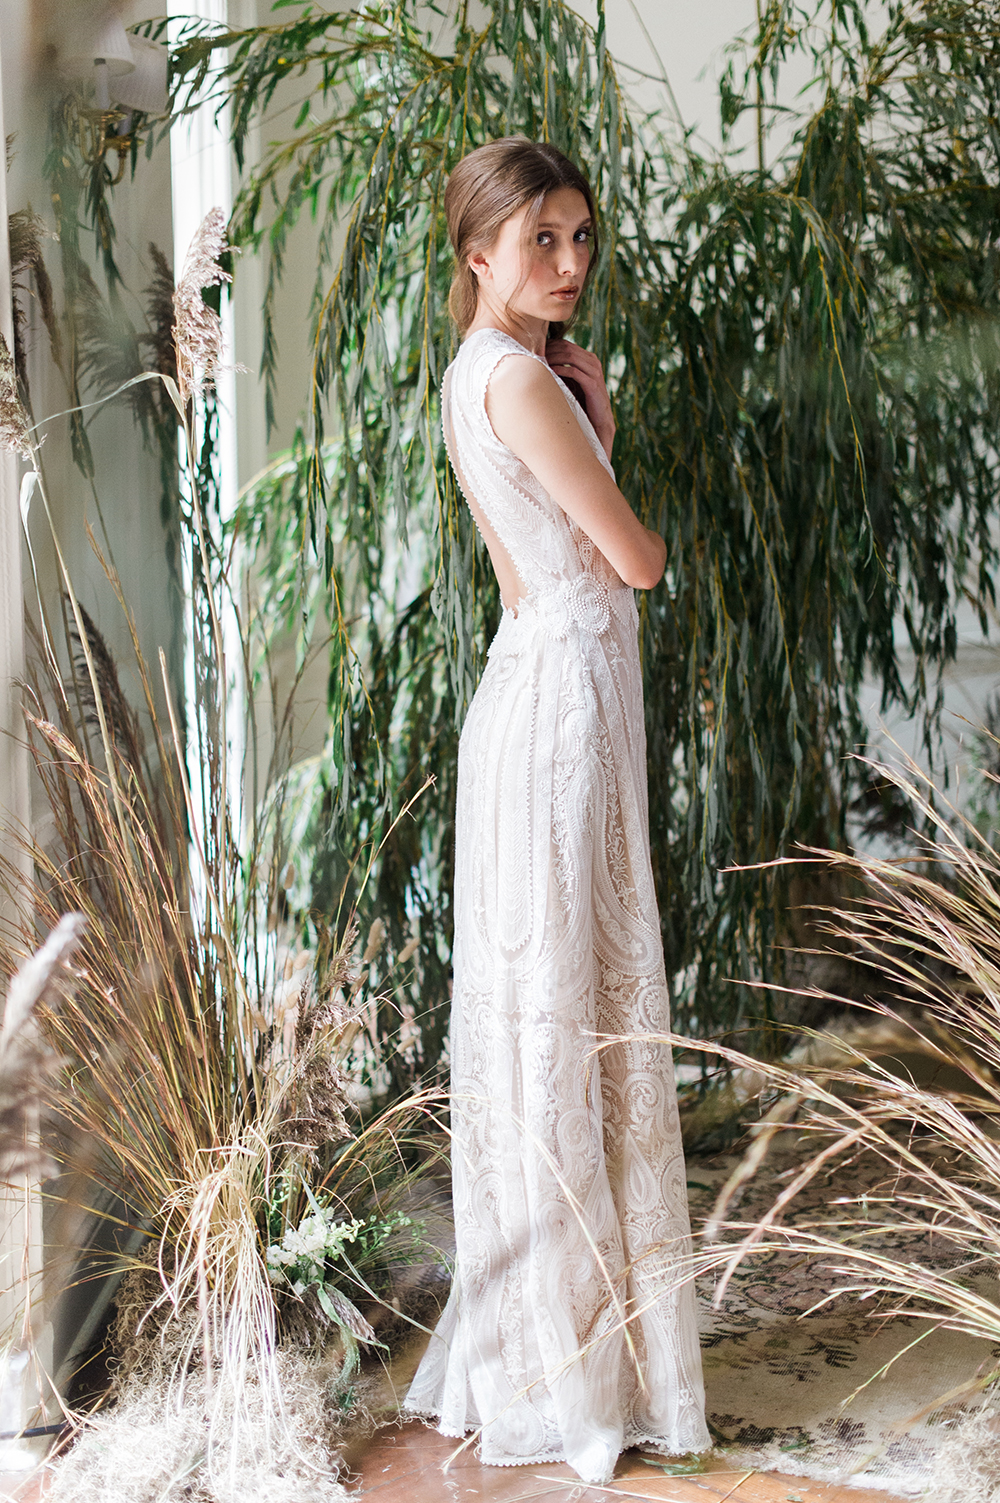 Solstice - Claire Pettibone 2017 Bridal Collection. Photo by Judy Pak. www.theweddingnotebook.com